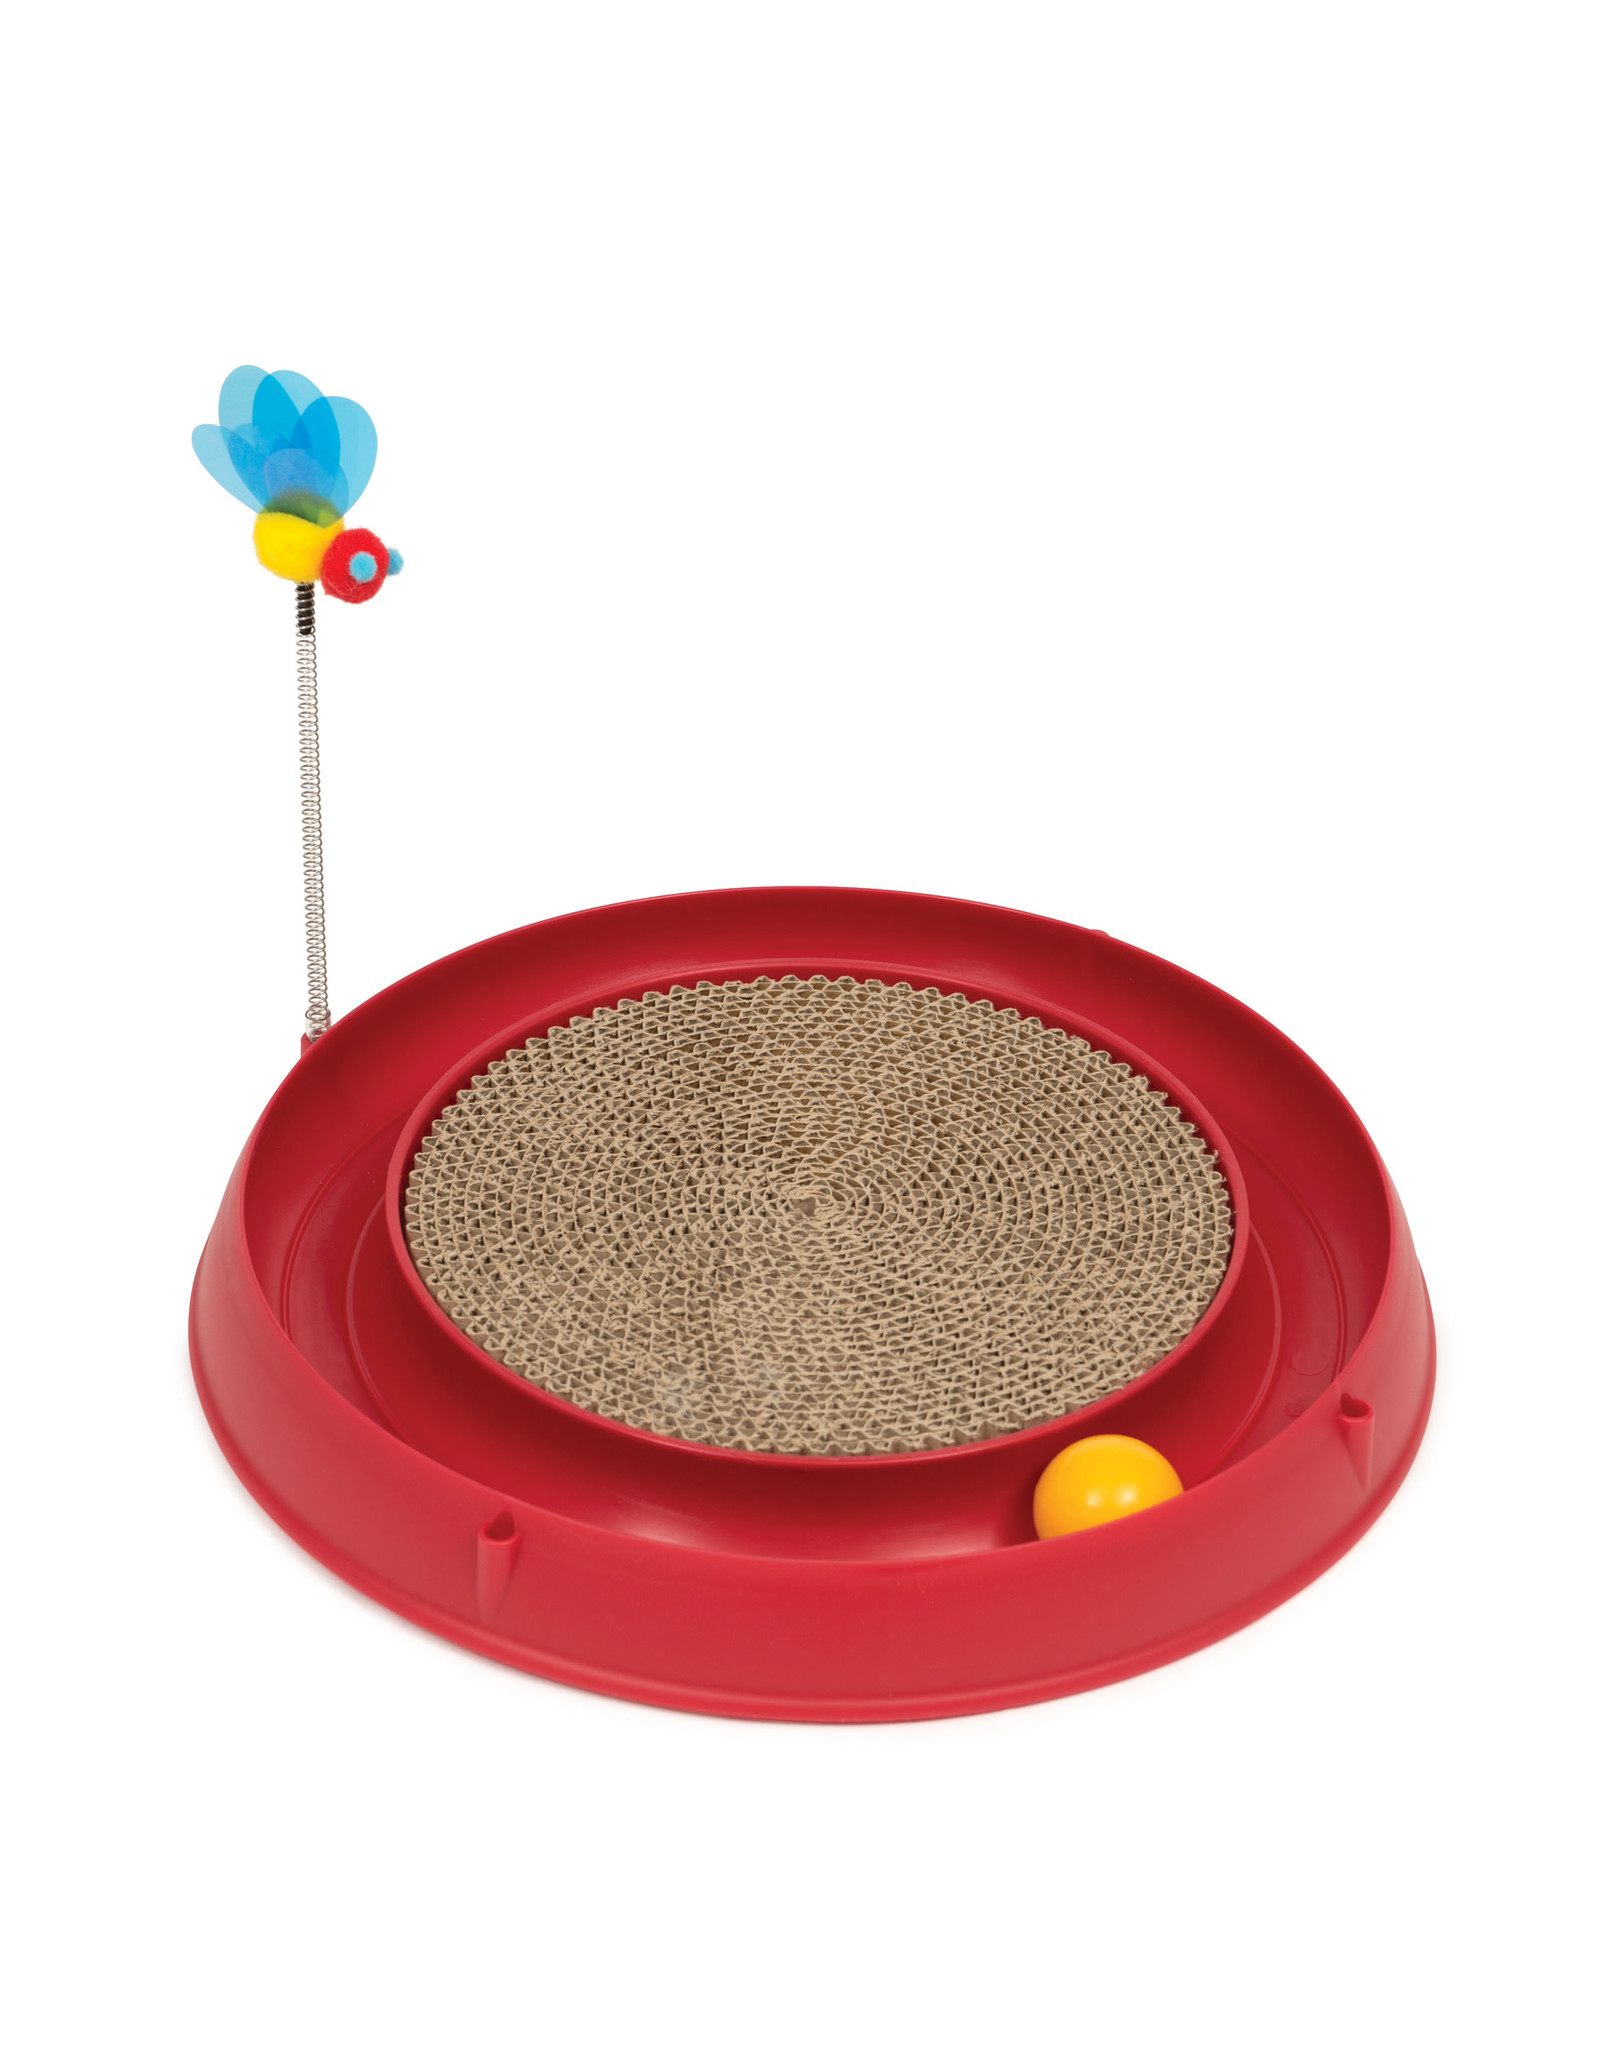 CatIt Catit Play 3 in 1 Circuit Ball Toy with Scratch Pad Red